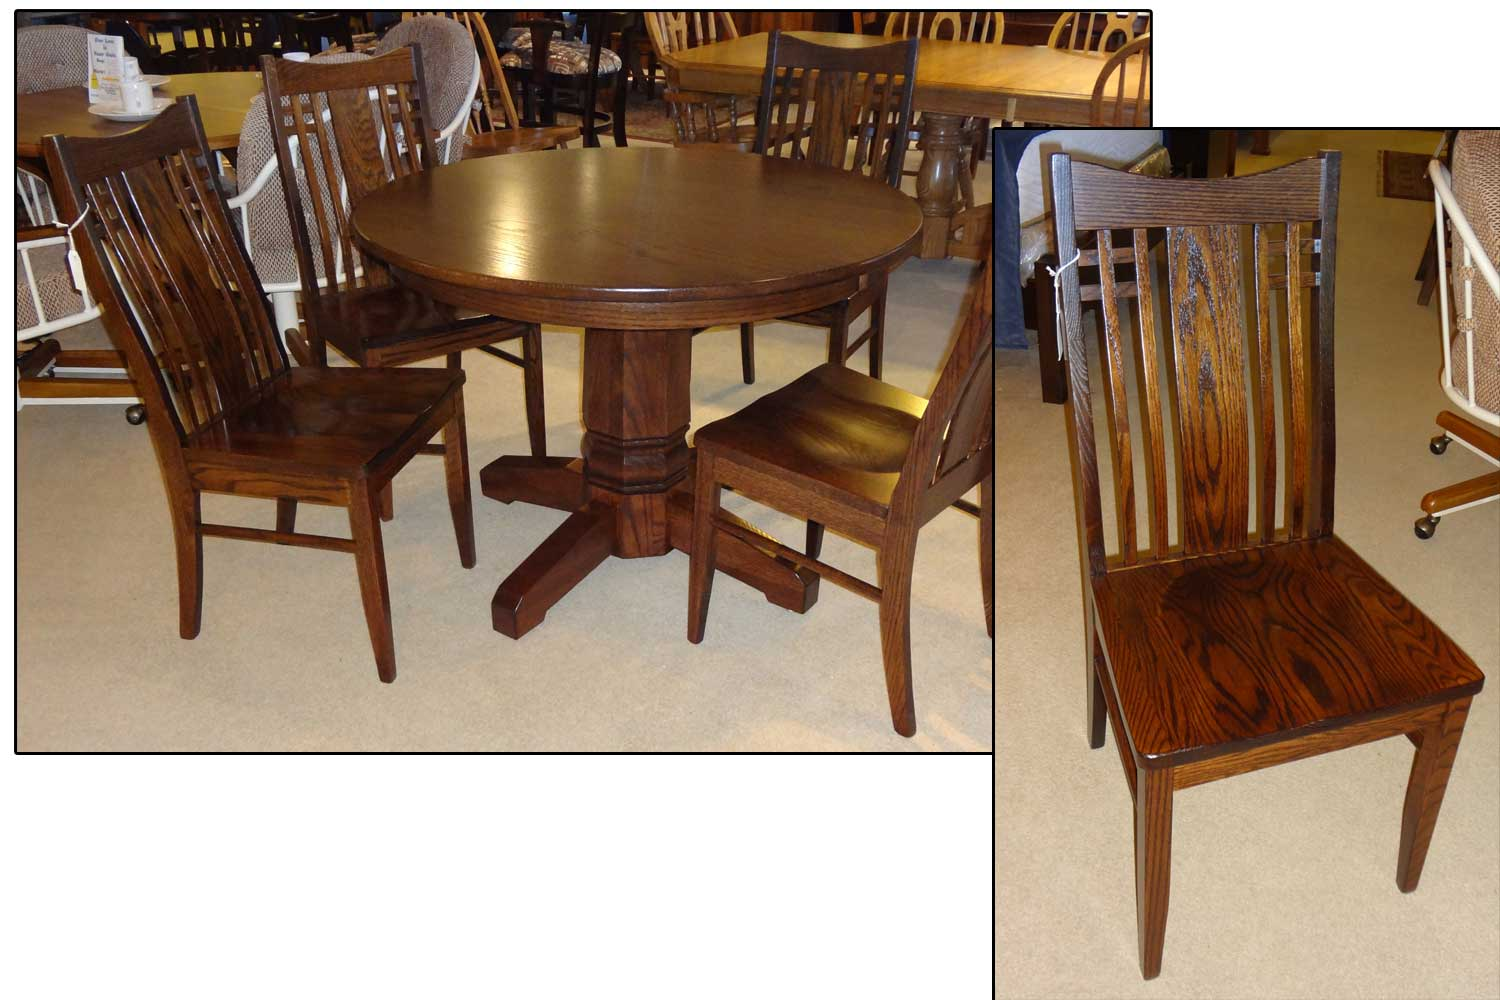 Amish dining furniture michigan rockford pedestal table